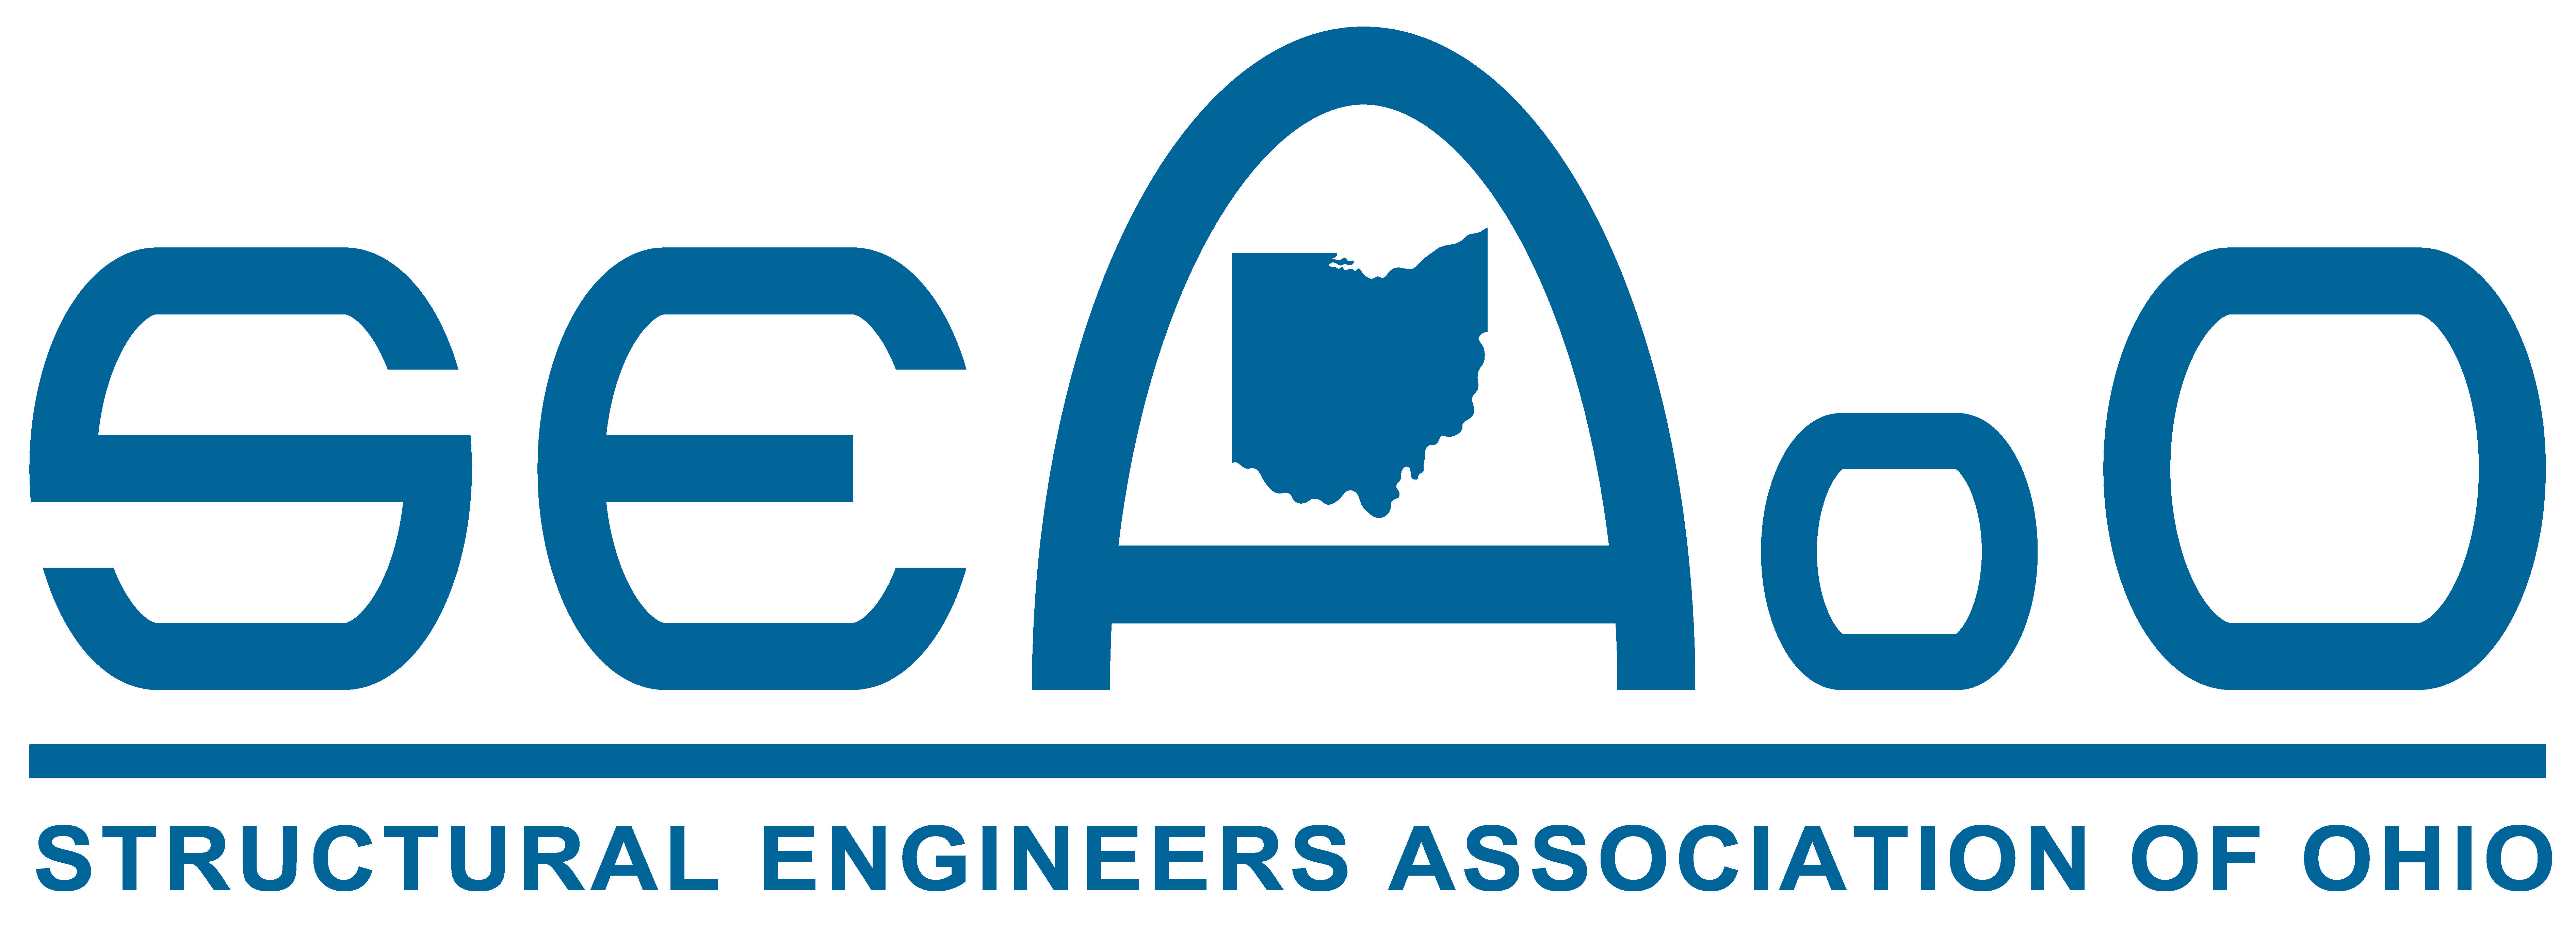 Structural Engineers Association of Ohio